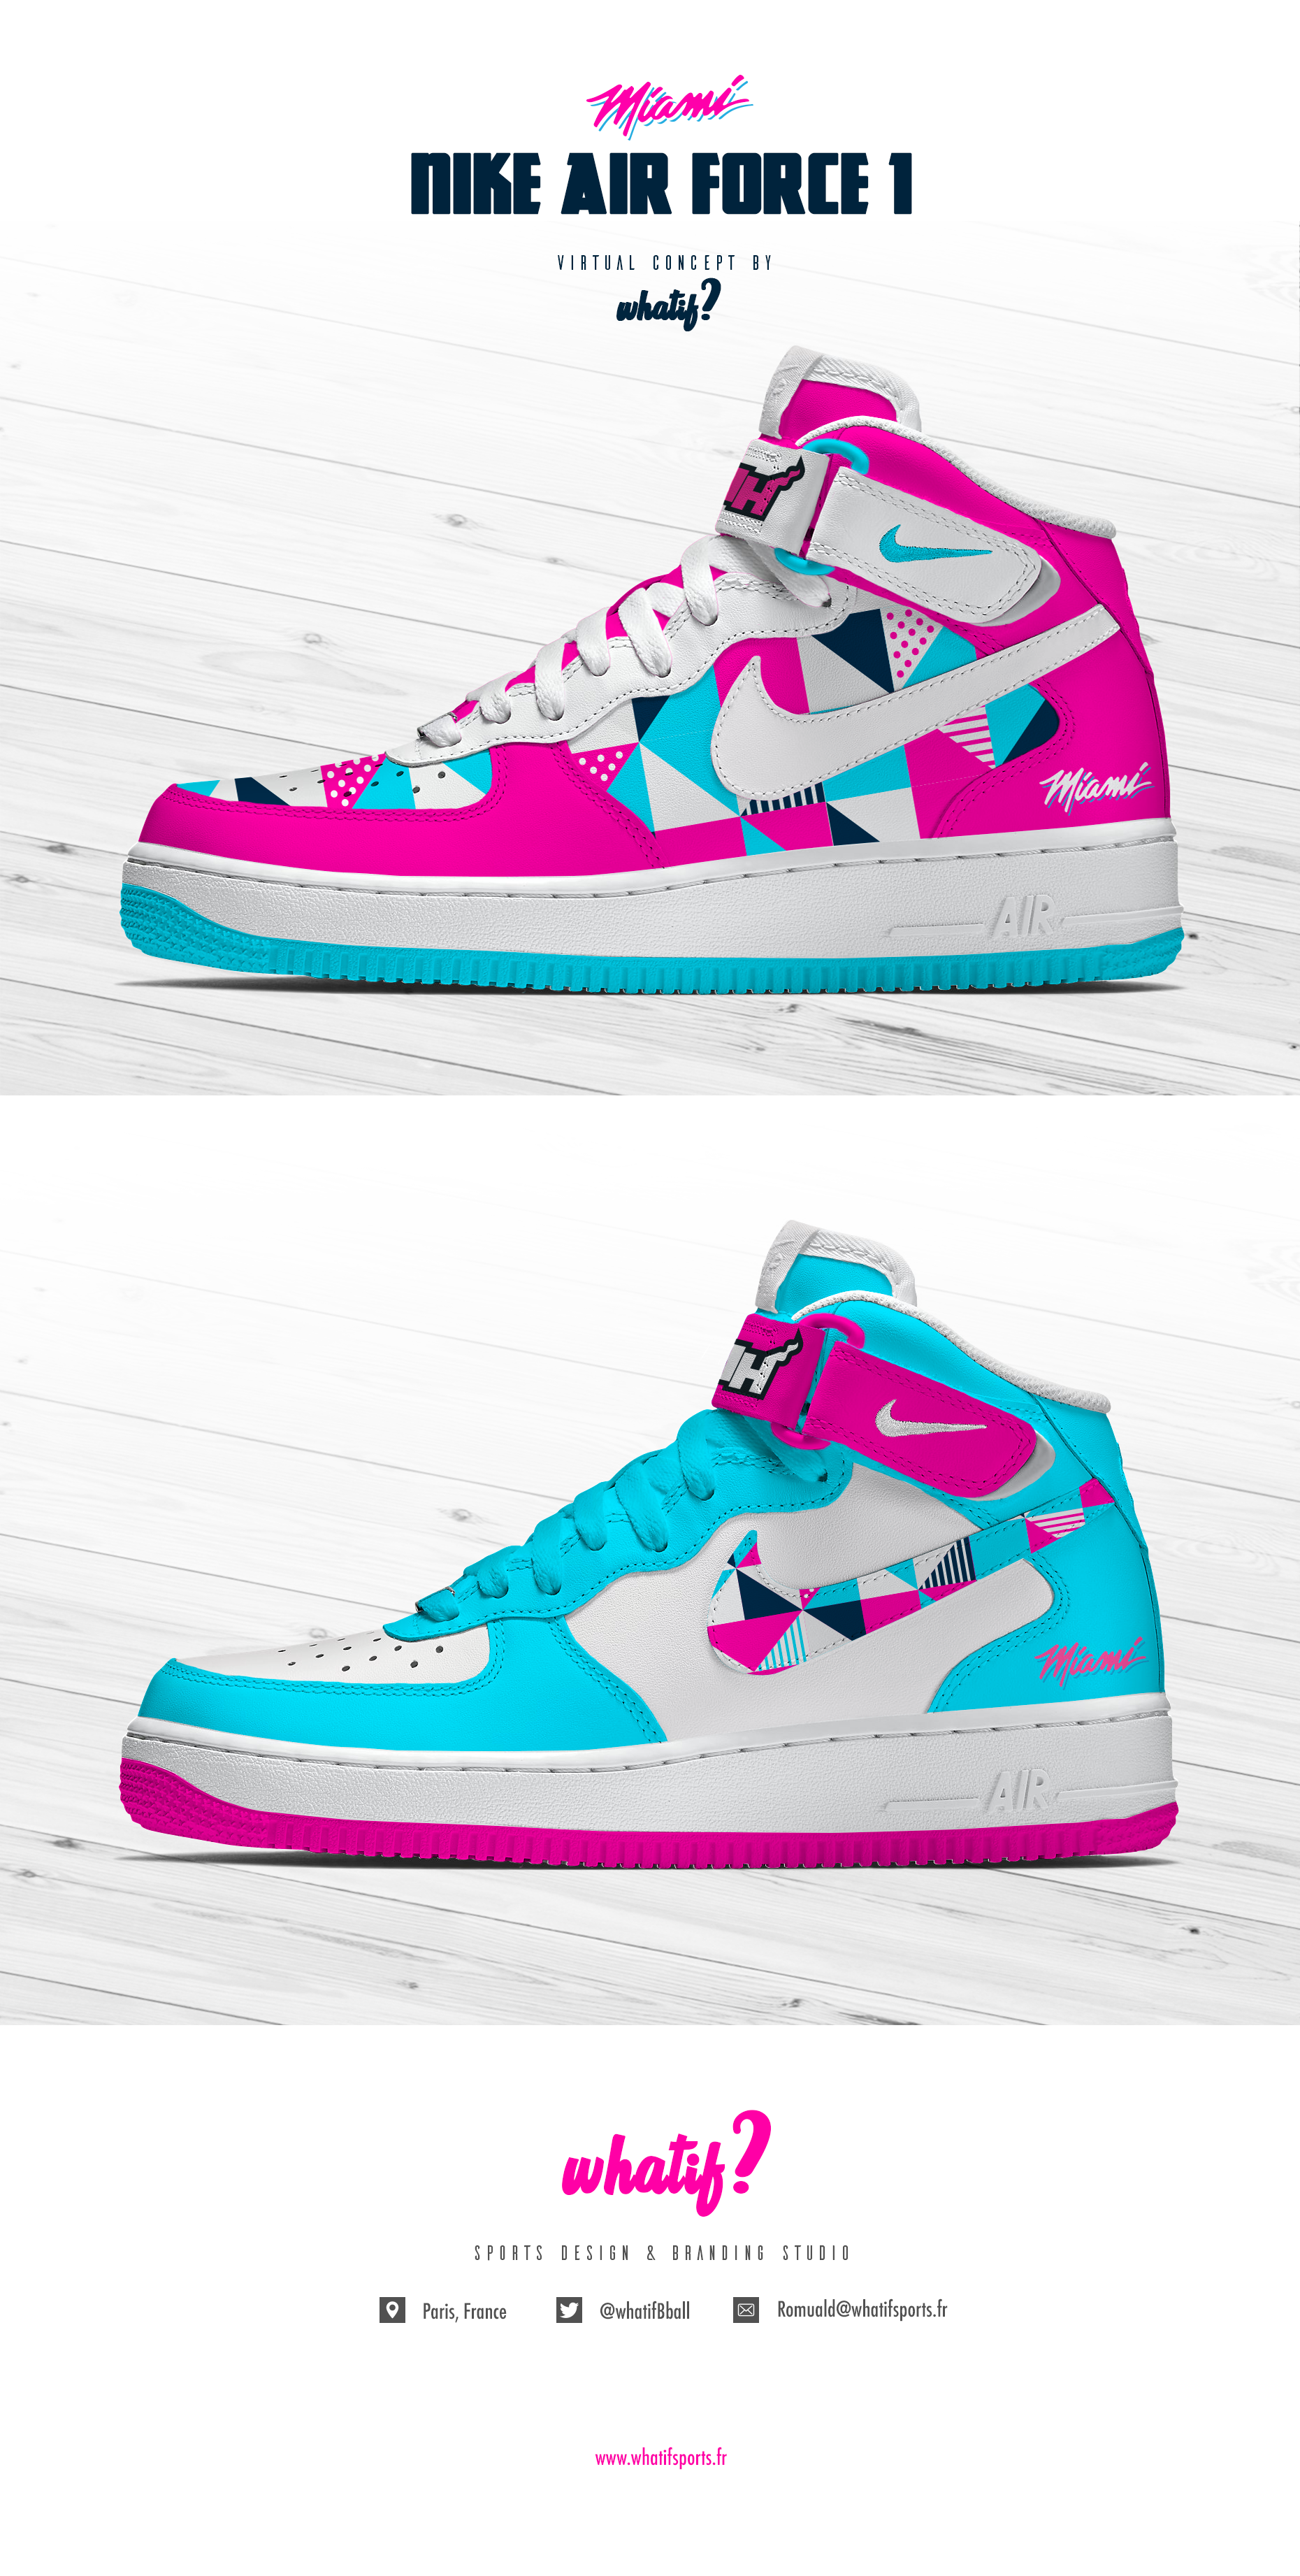 Nike Air Force 1, Miami Heat special edition on Behance